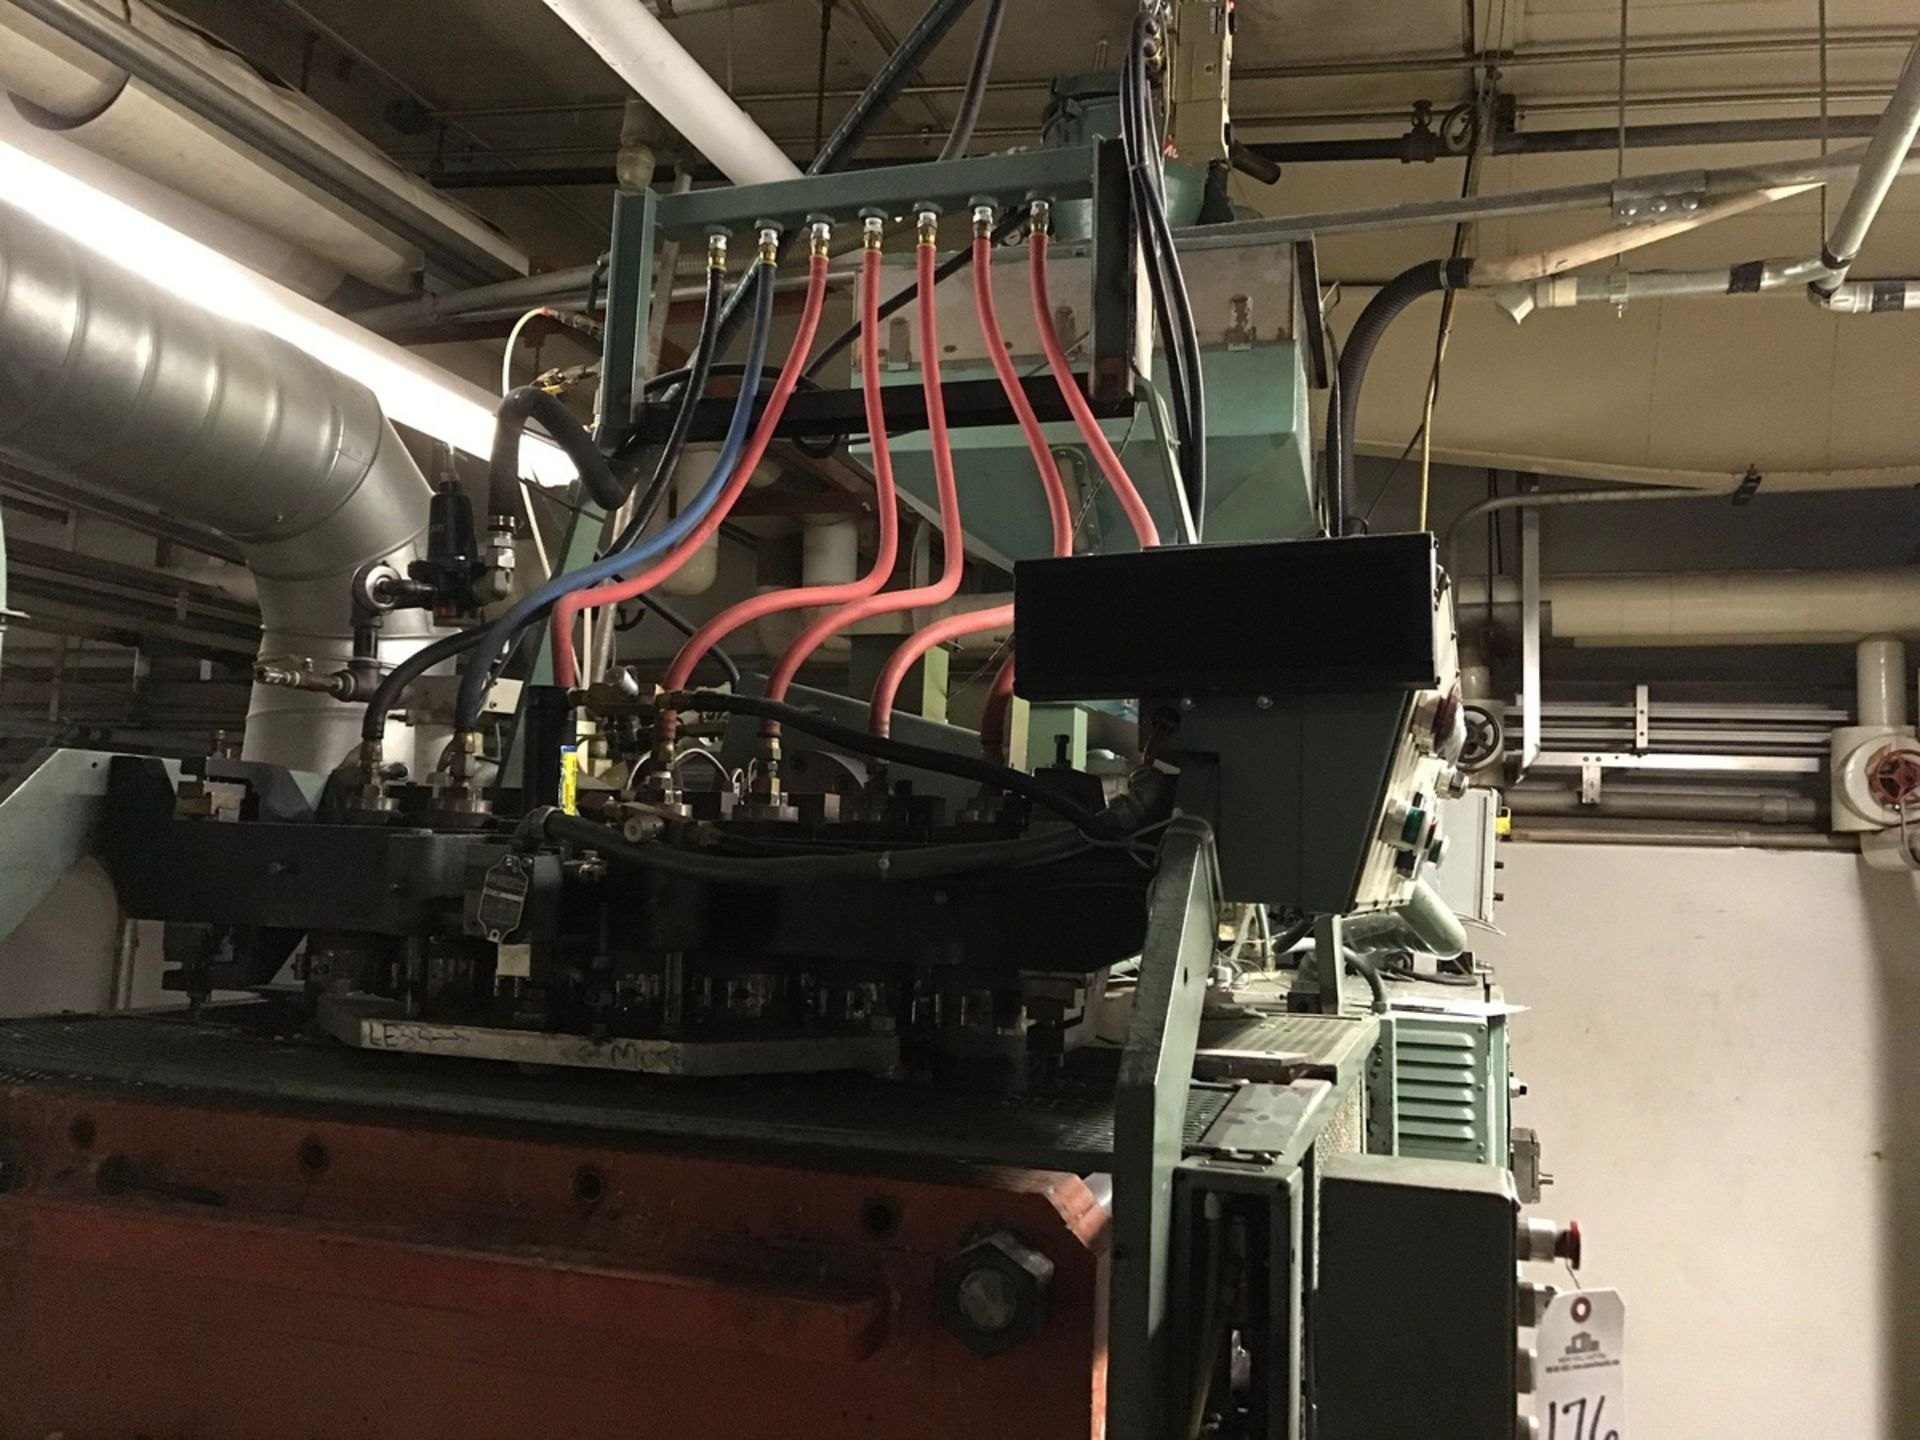 Uniloy 7-Head Blow Molding Machine, M# 250R1, S/N 250R1-3944 | Rig Fee: $14500 - Image 4 of 8